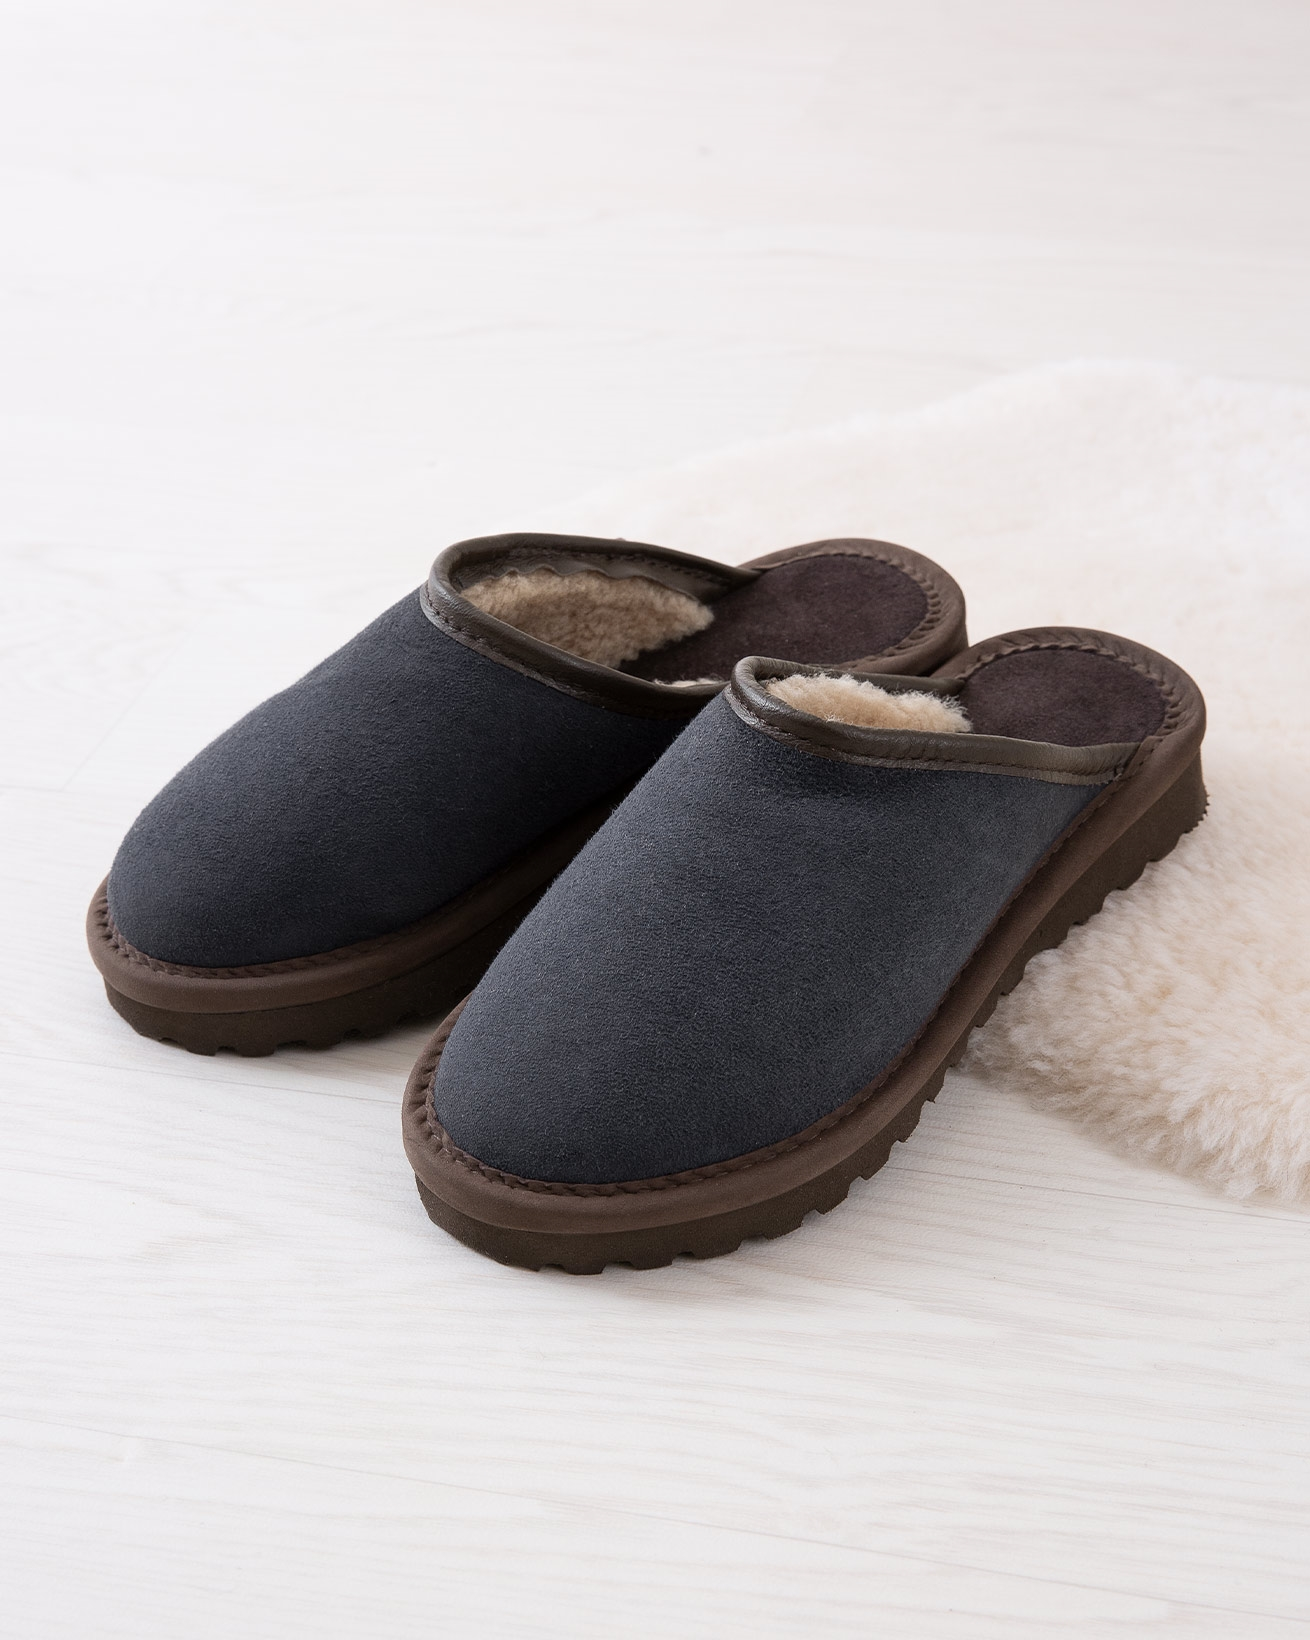 6617_ladies-clogs_blue-iris_lifestyle_lfs.jpg